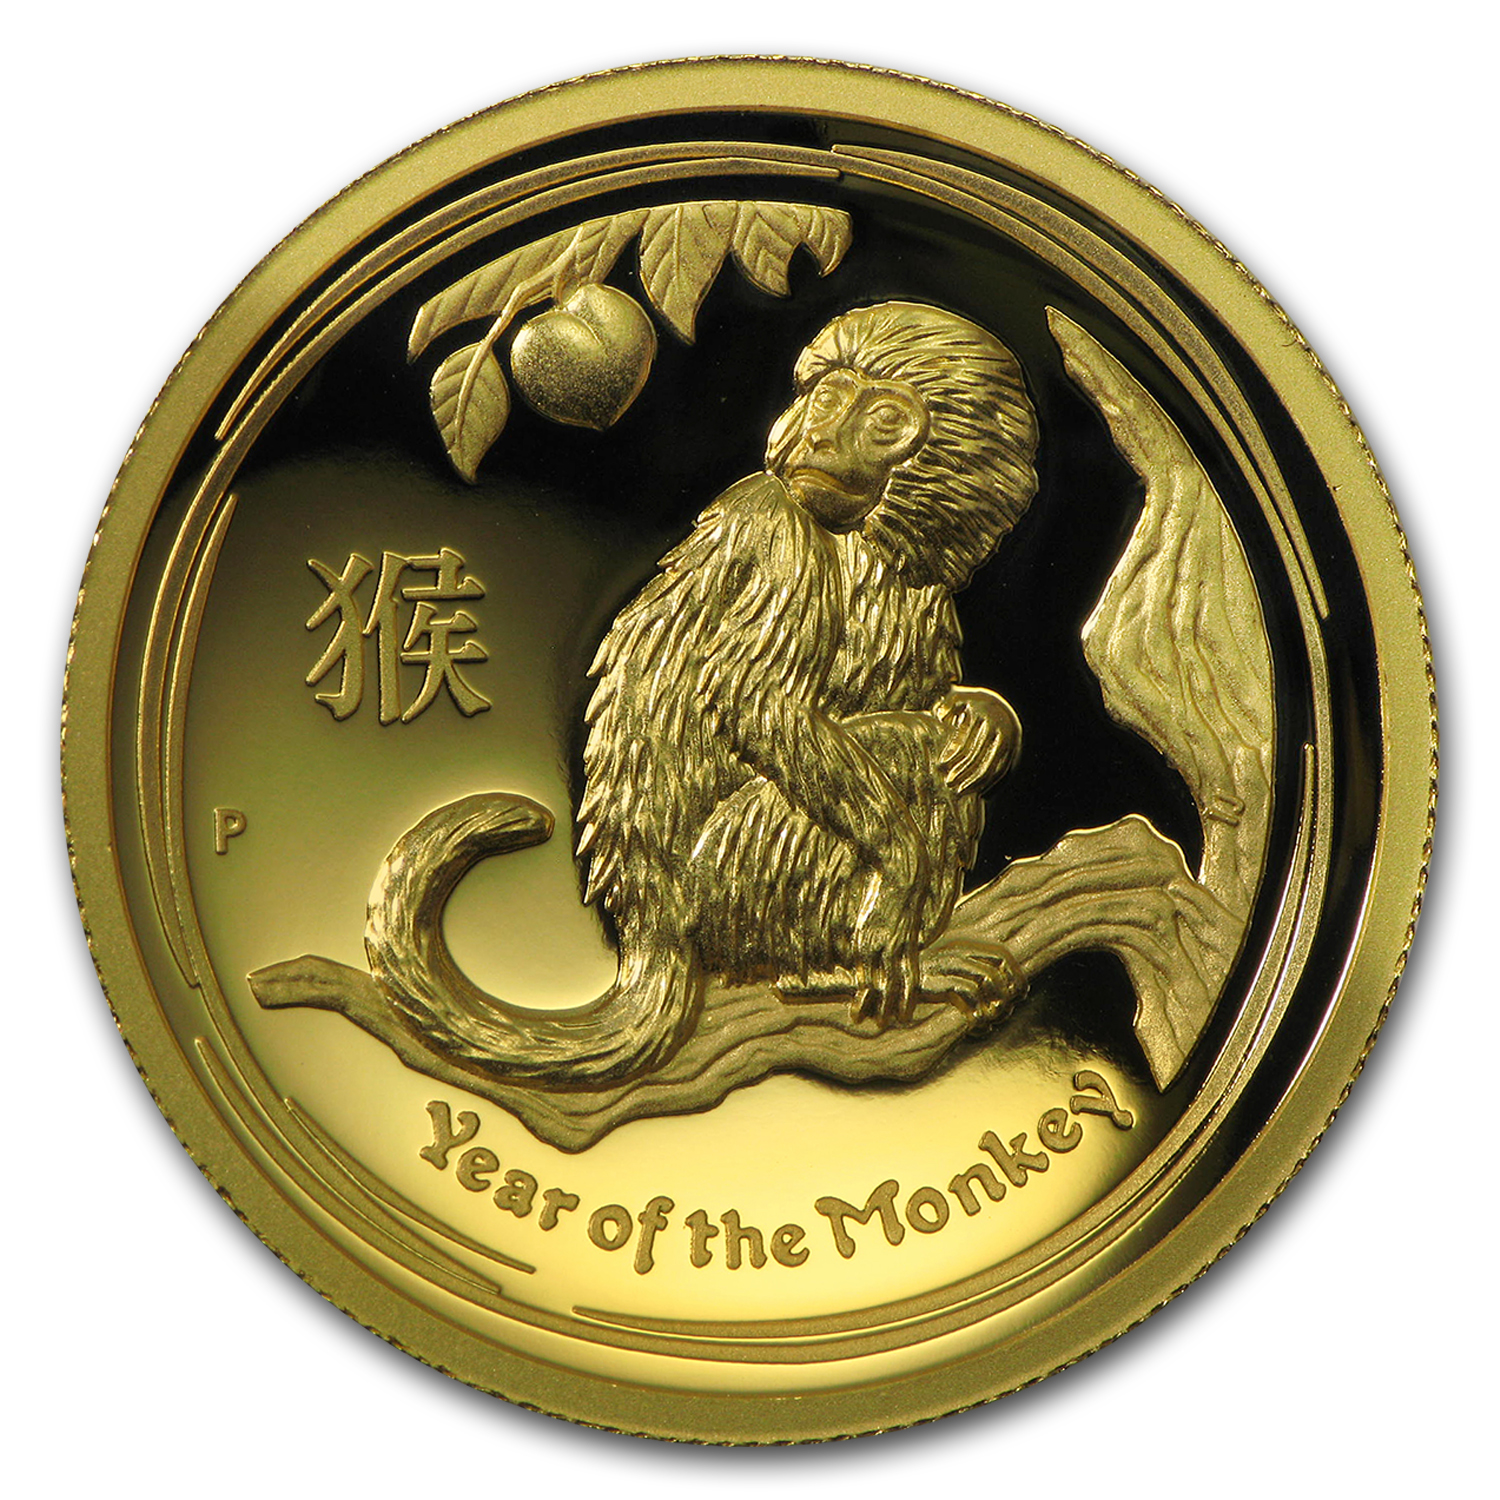 2016 Australia 1 oz Gold Lunar Monkey Proof (HR, Box & COA)